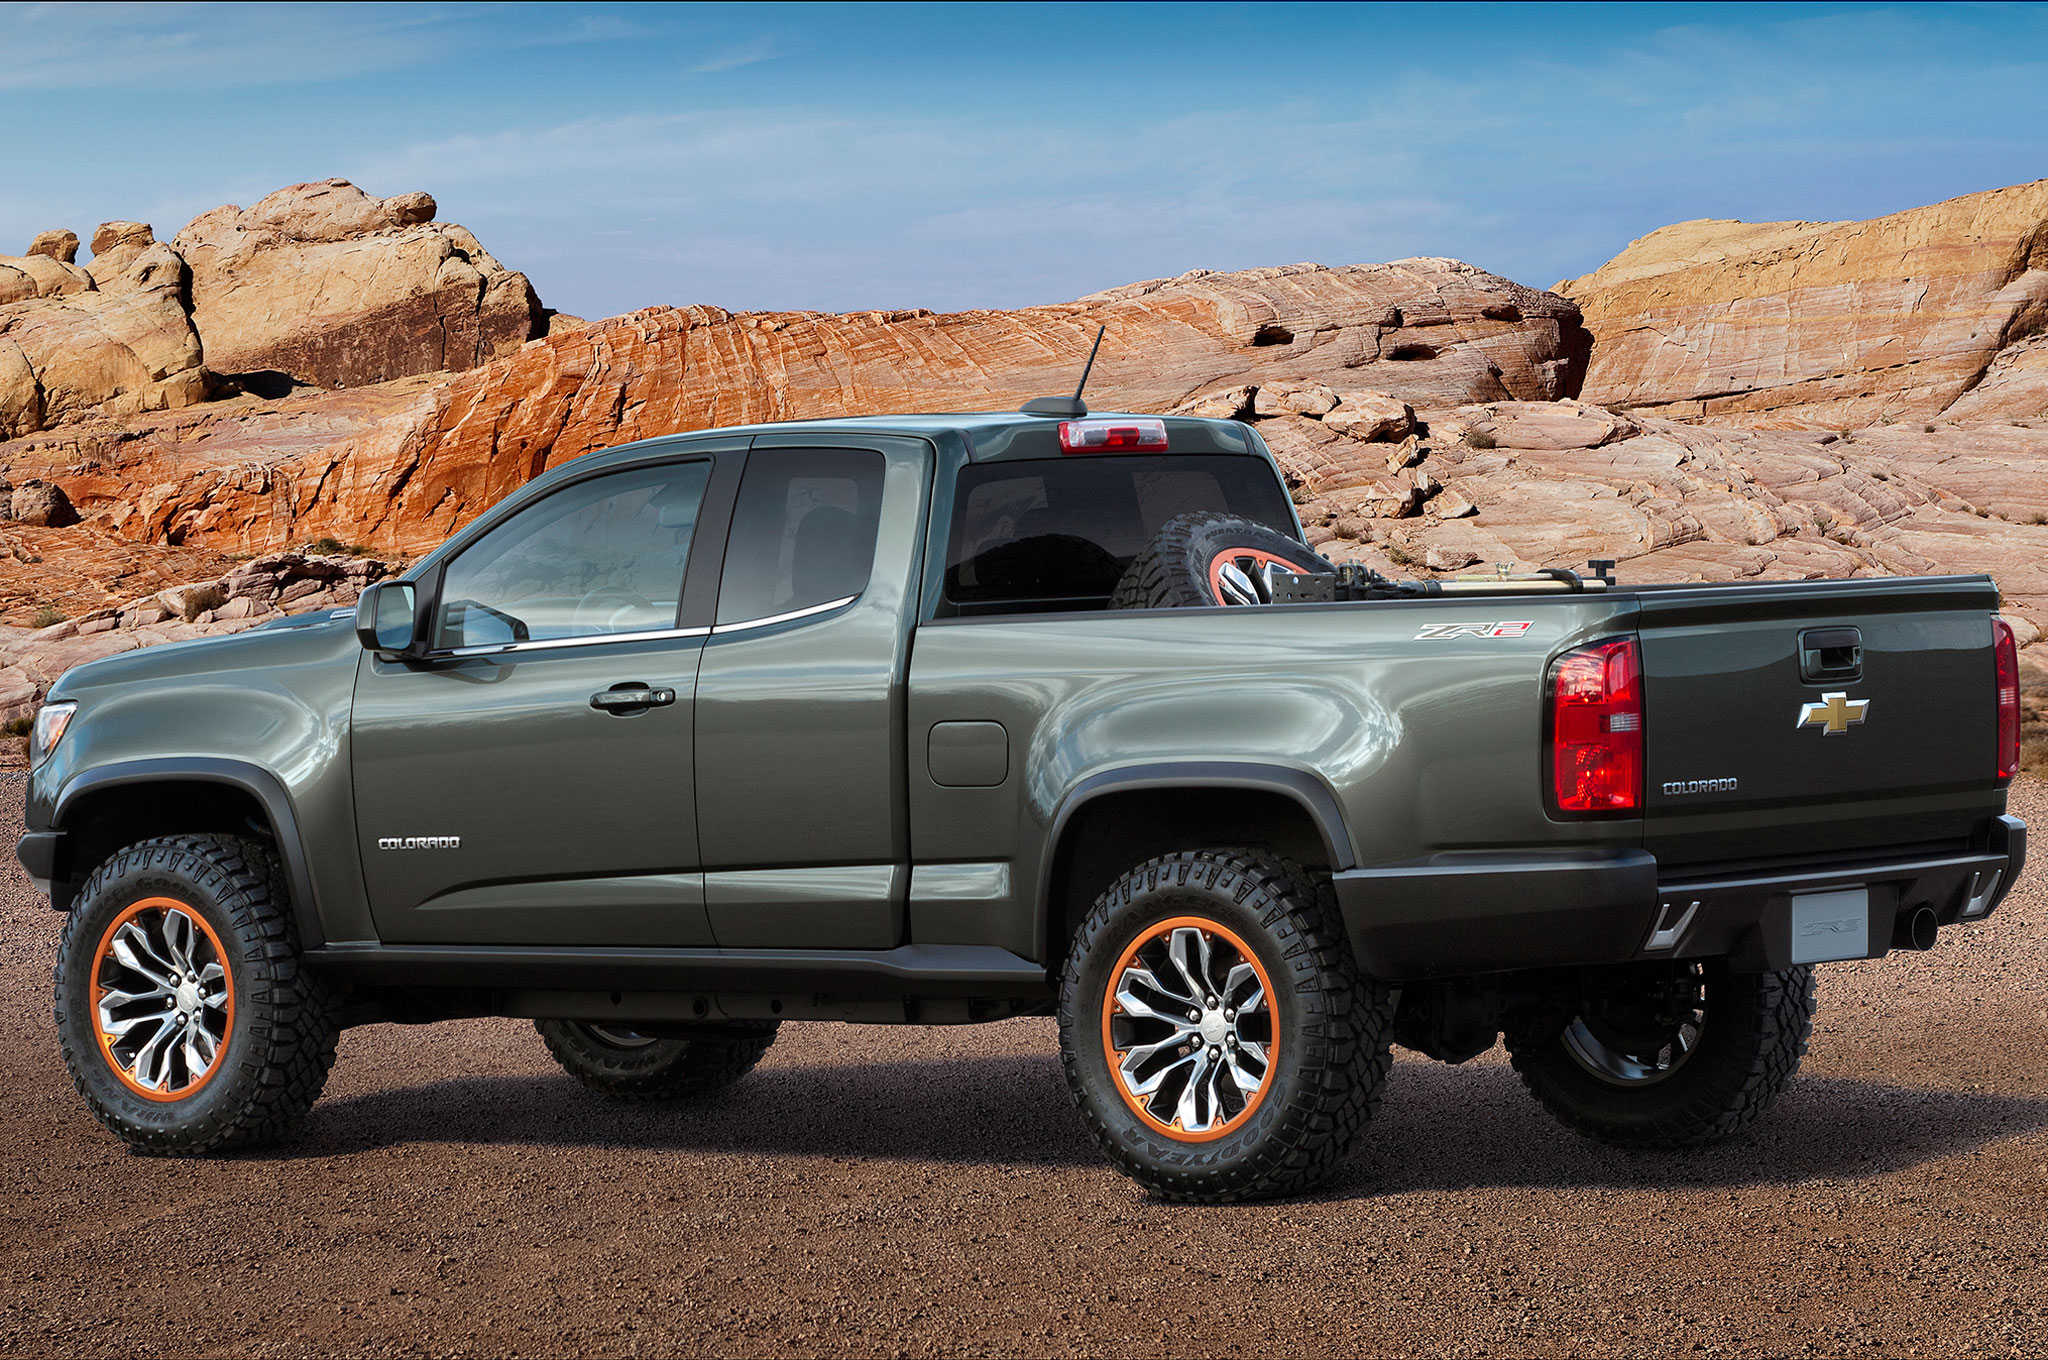 2015 chevrolet colorado zr2 concept rear side view